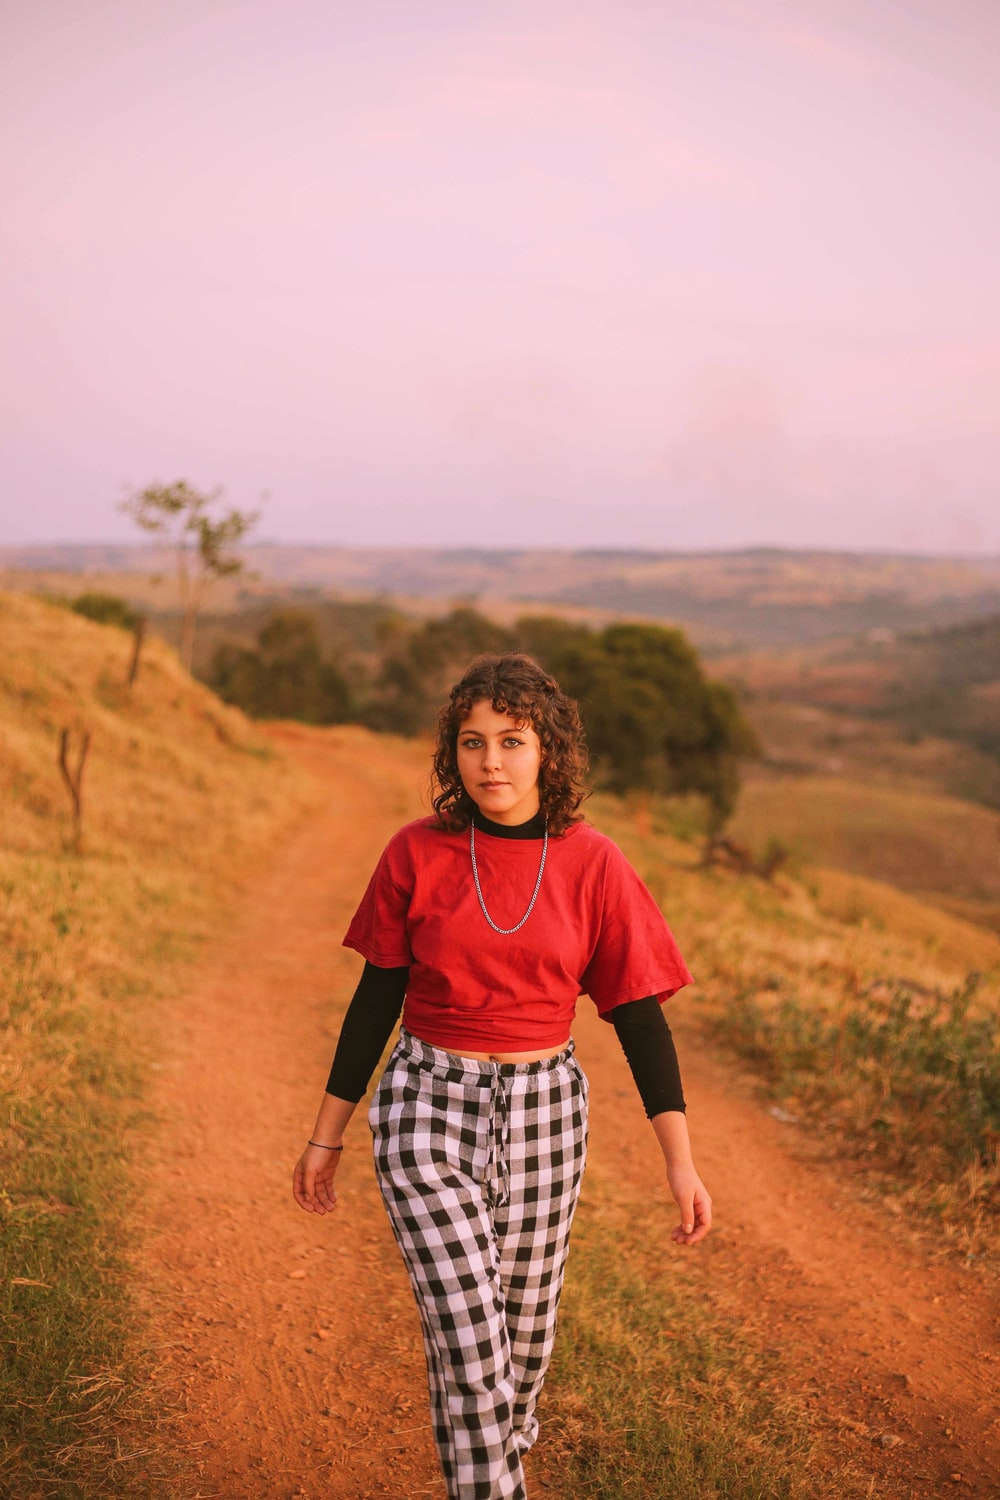 woman in red shirt and black and white checkered pants walking on brown field during daytime